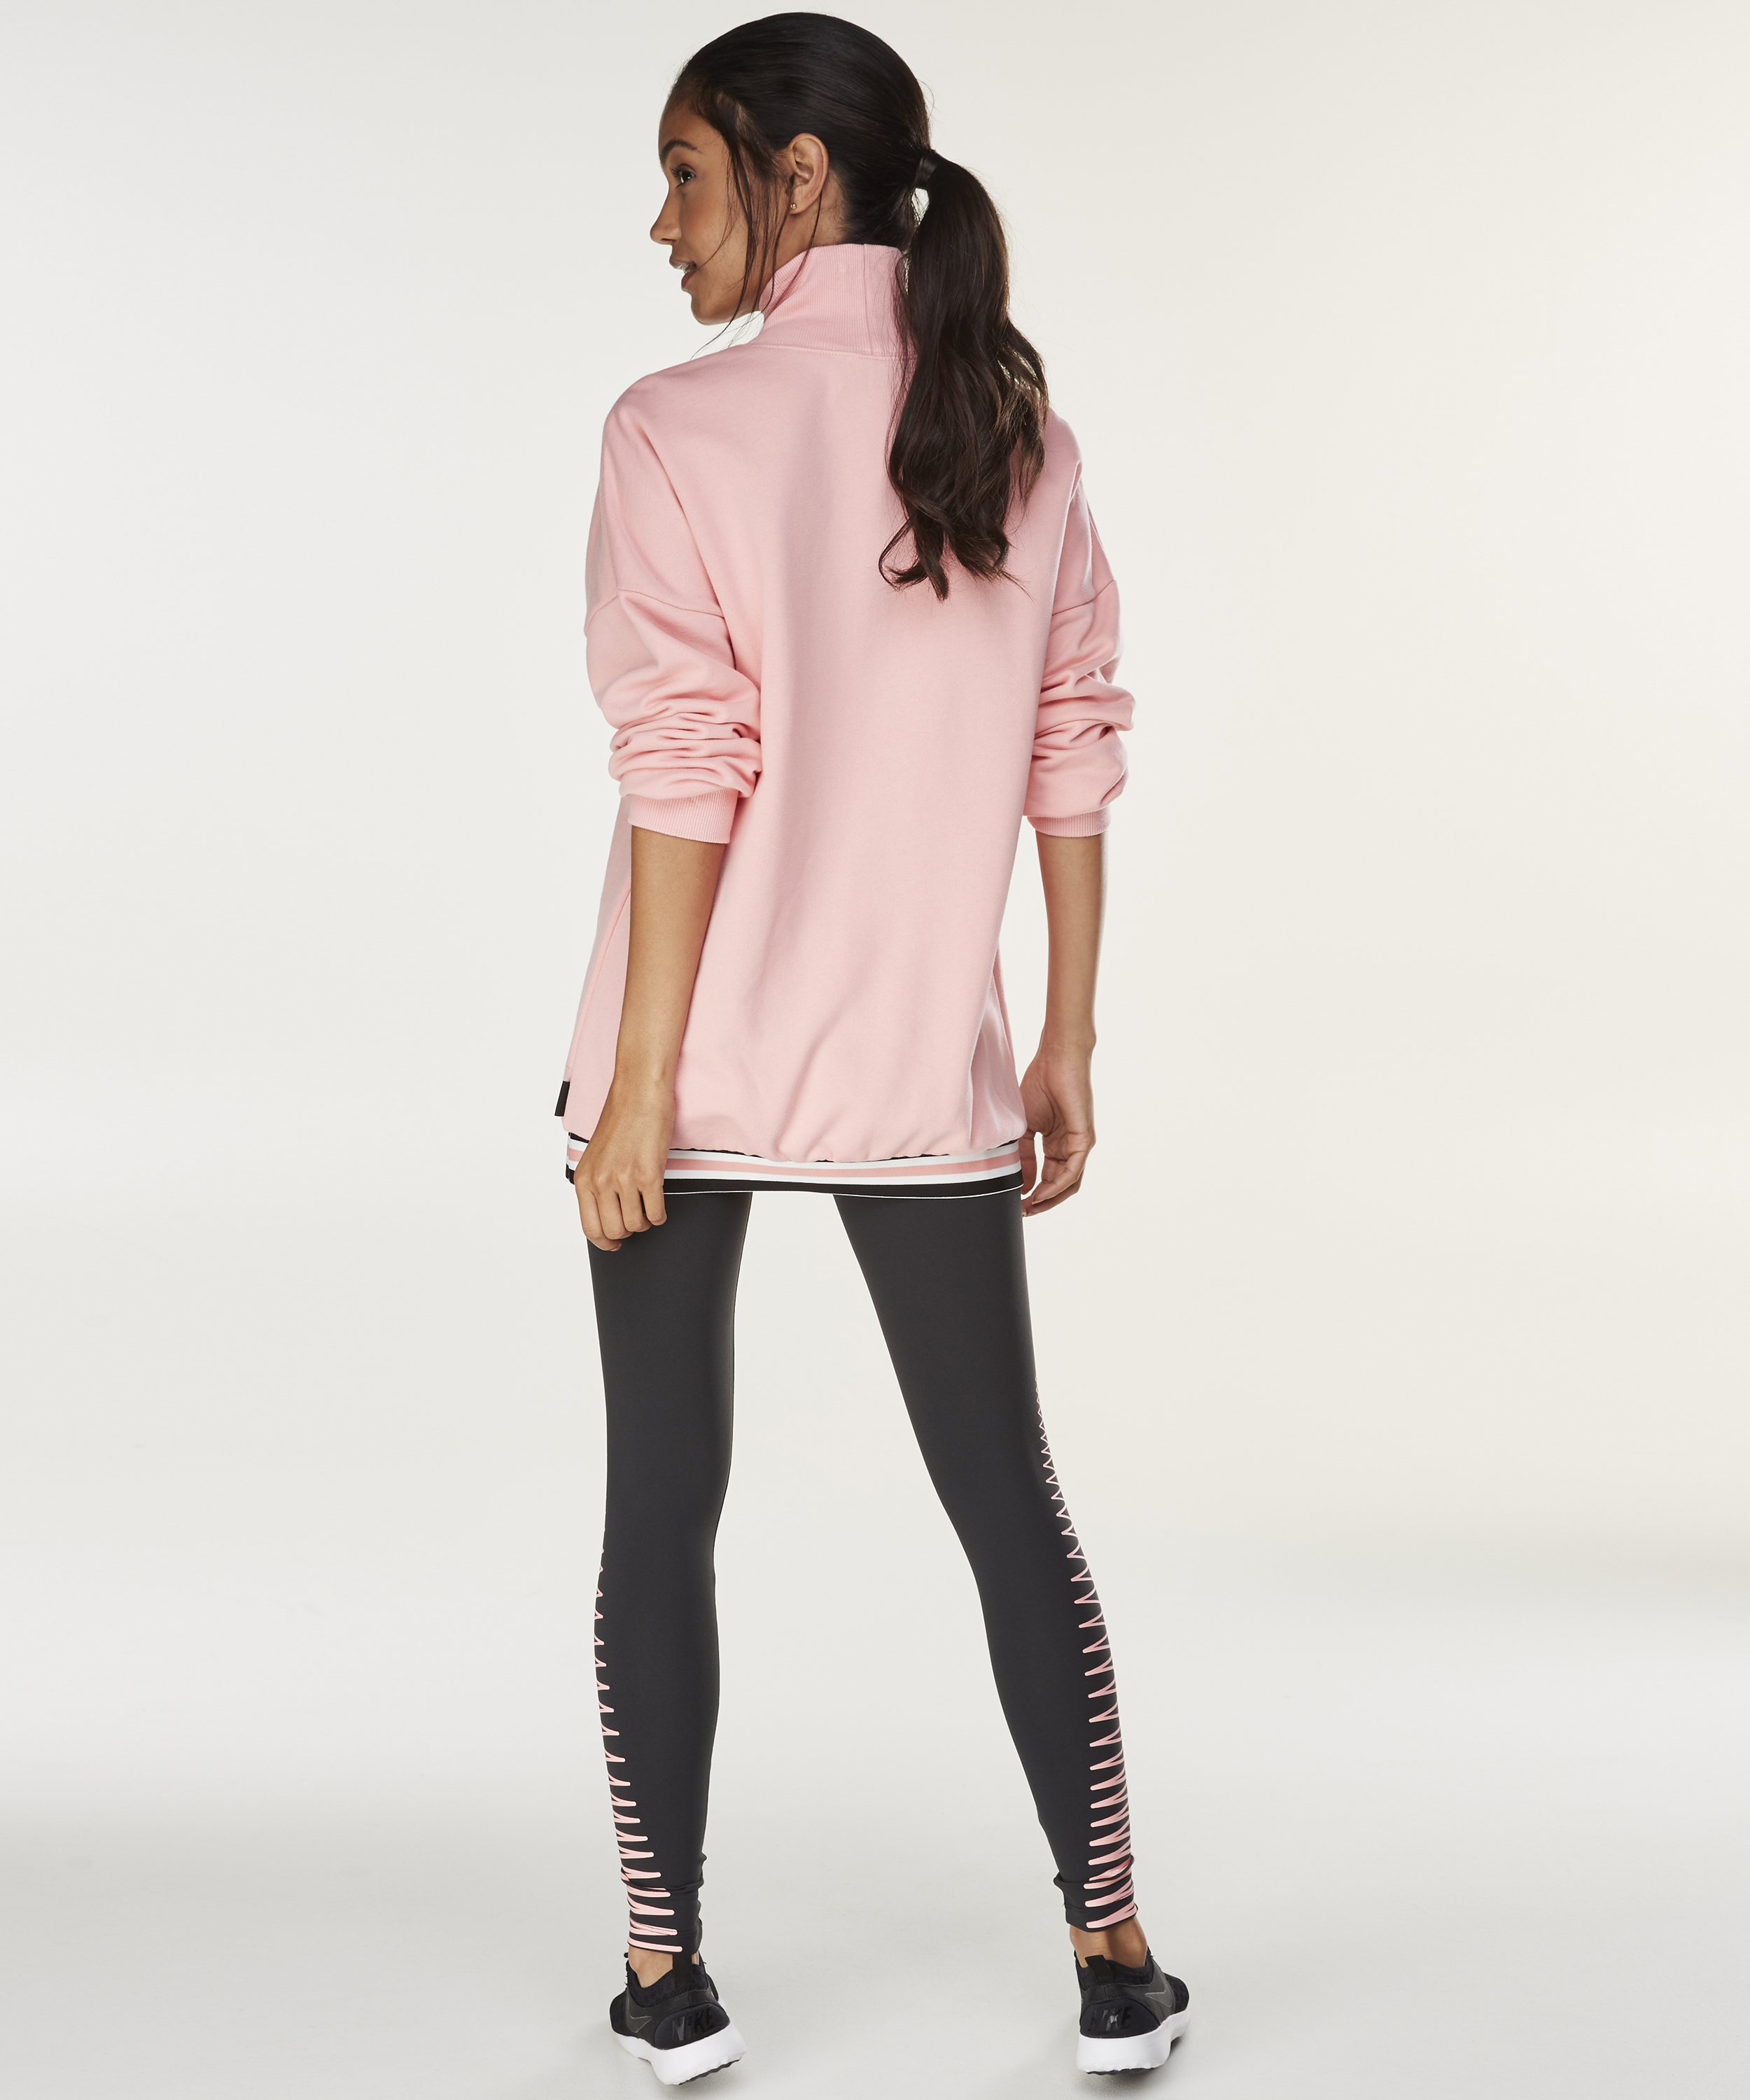 HKMX Sweater Branded, Roze, main